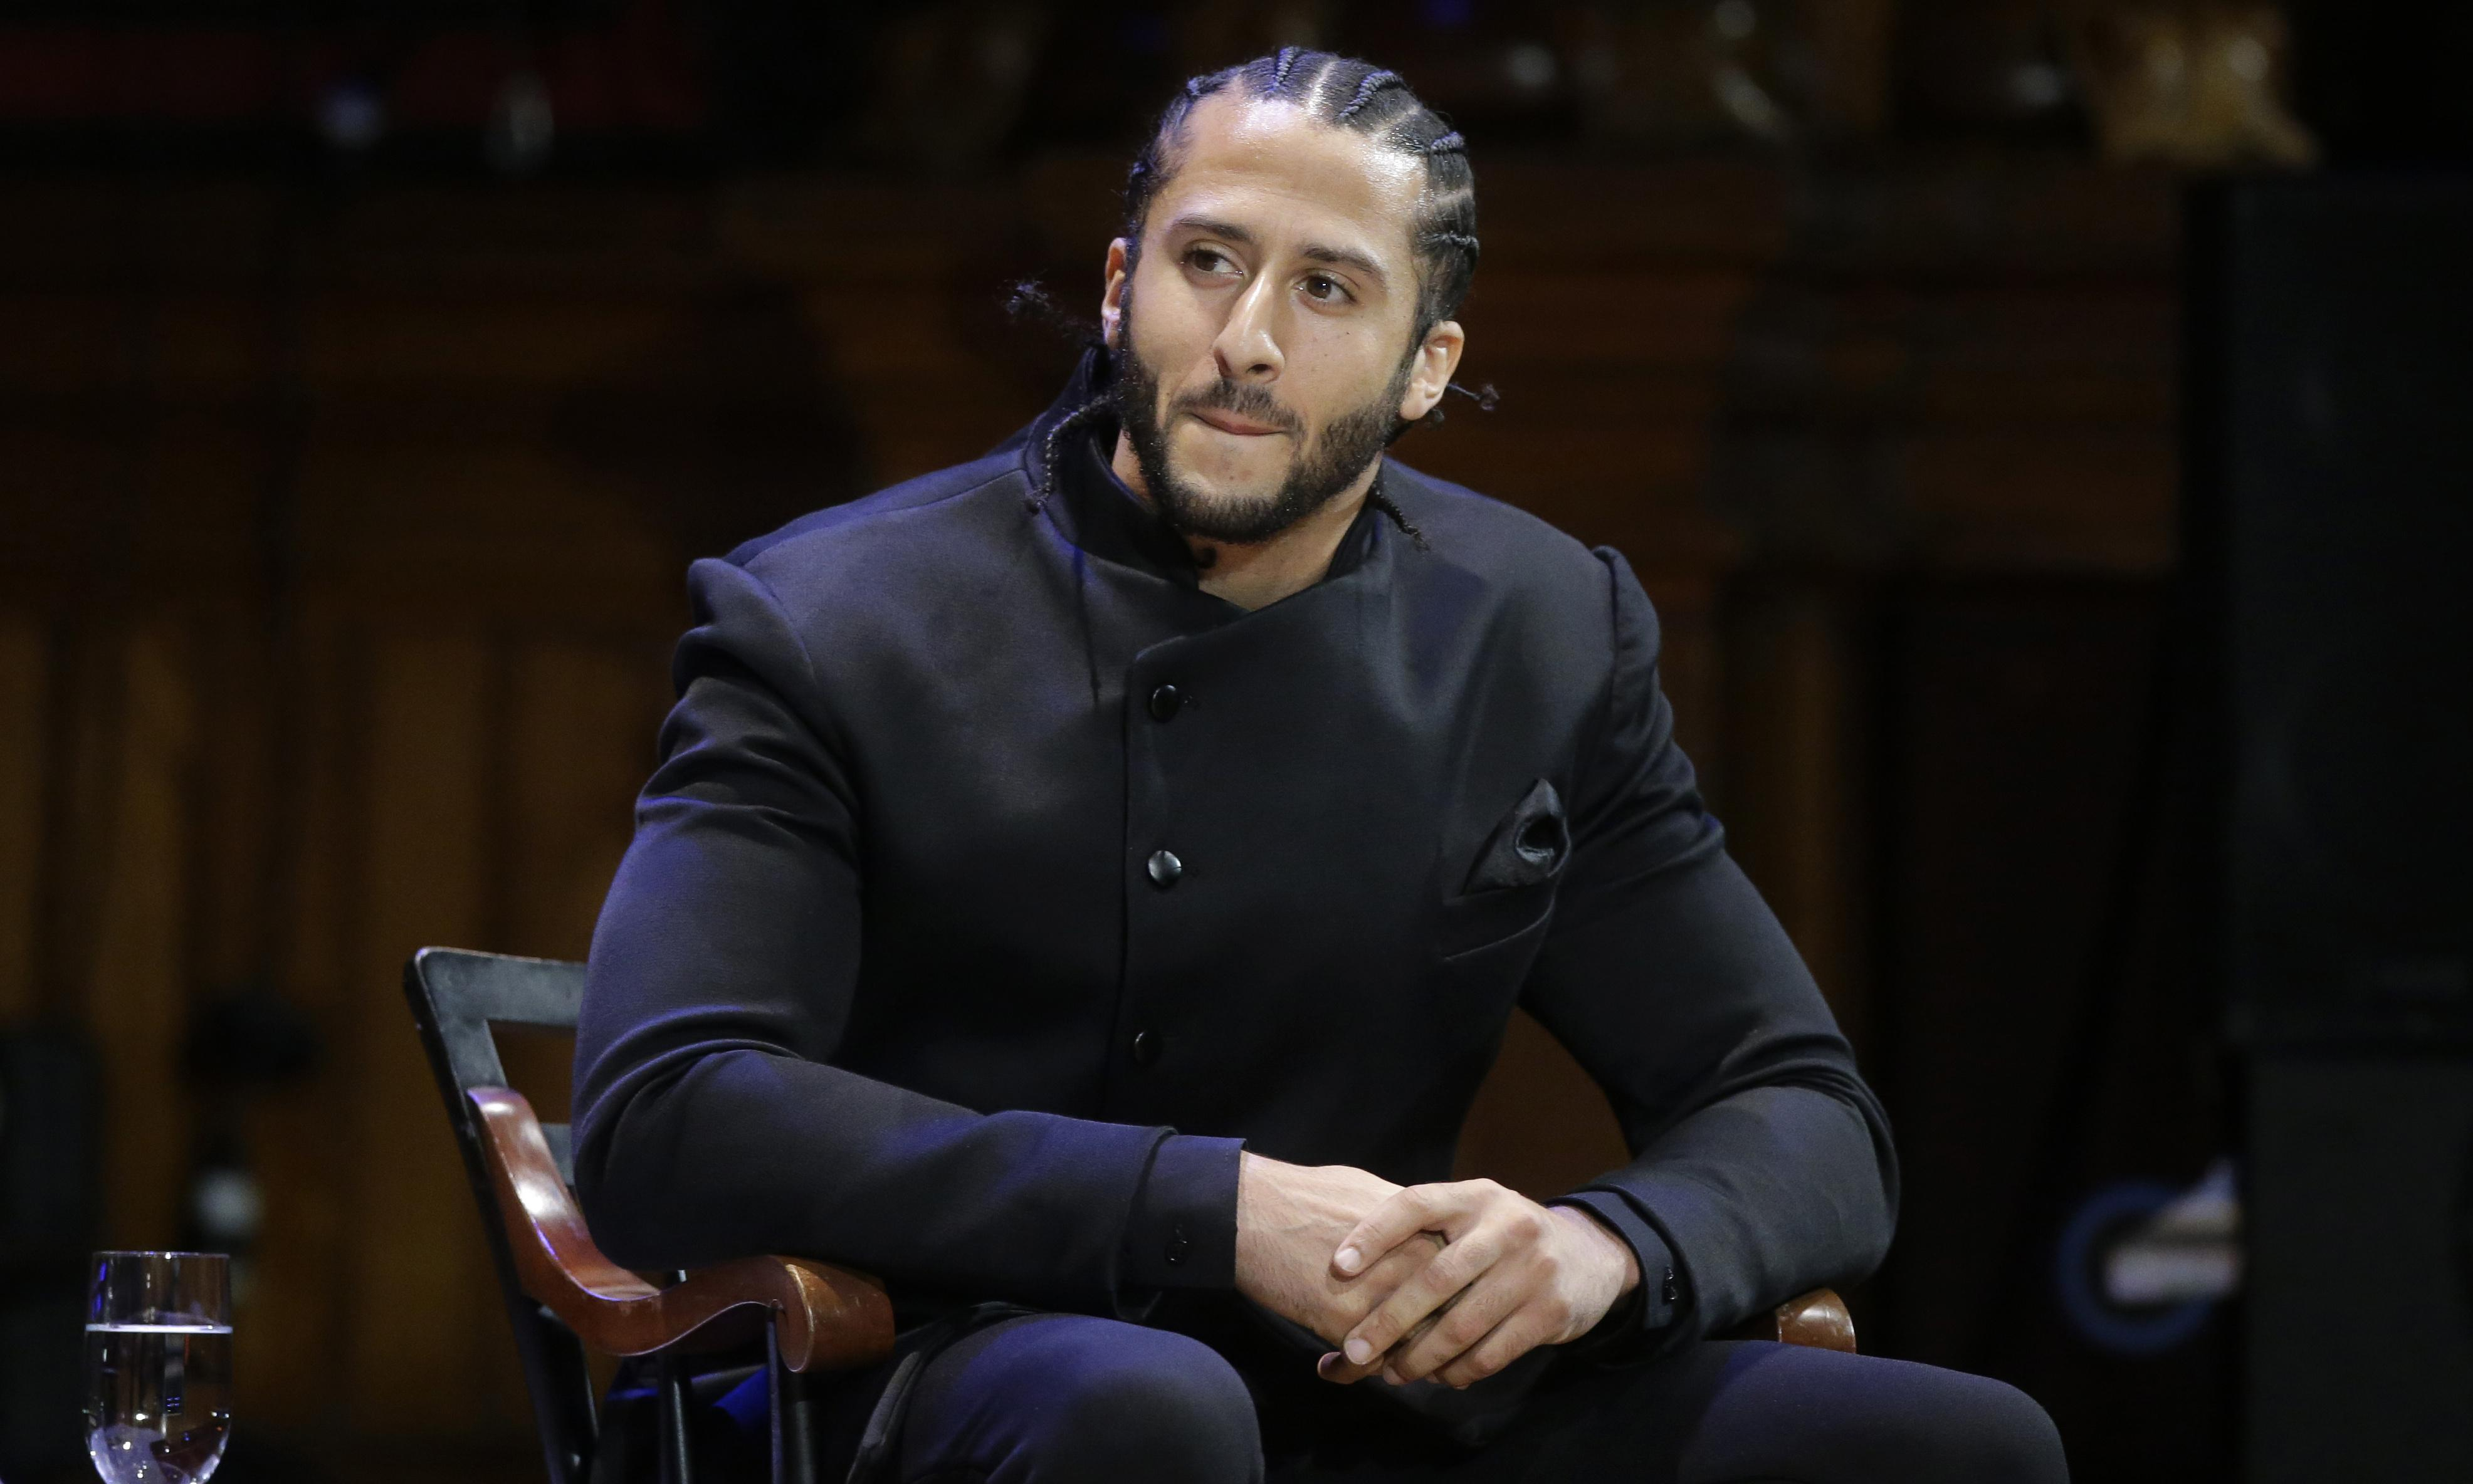 Colin Kaepernick reaches settlement with NFL over kneeling protest fallout